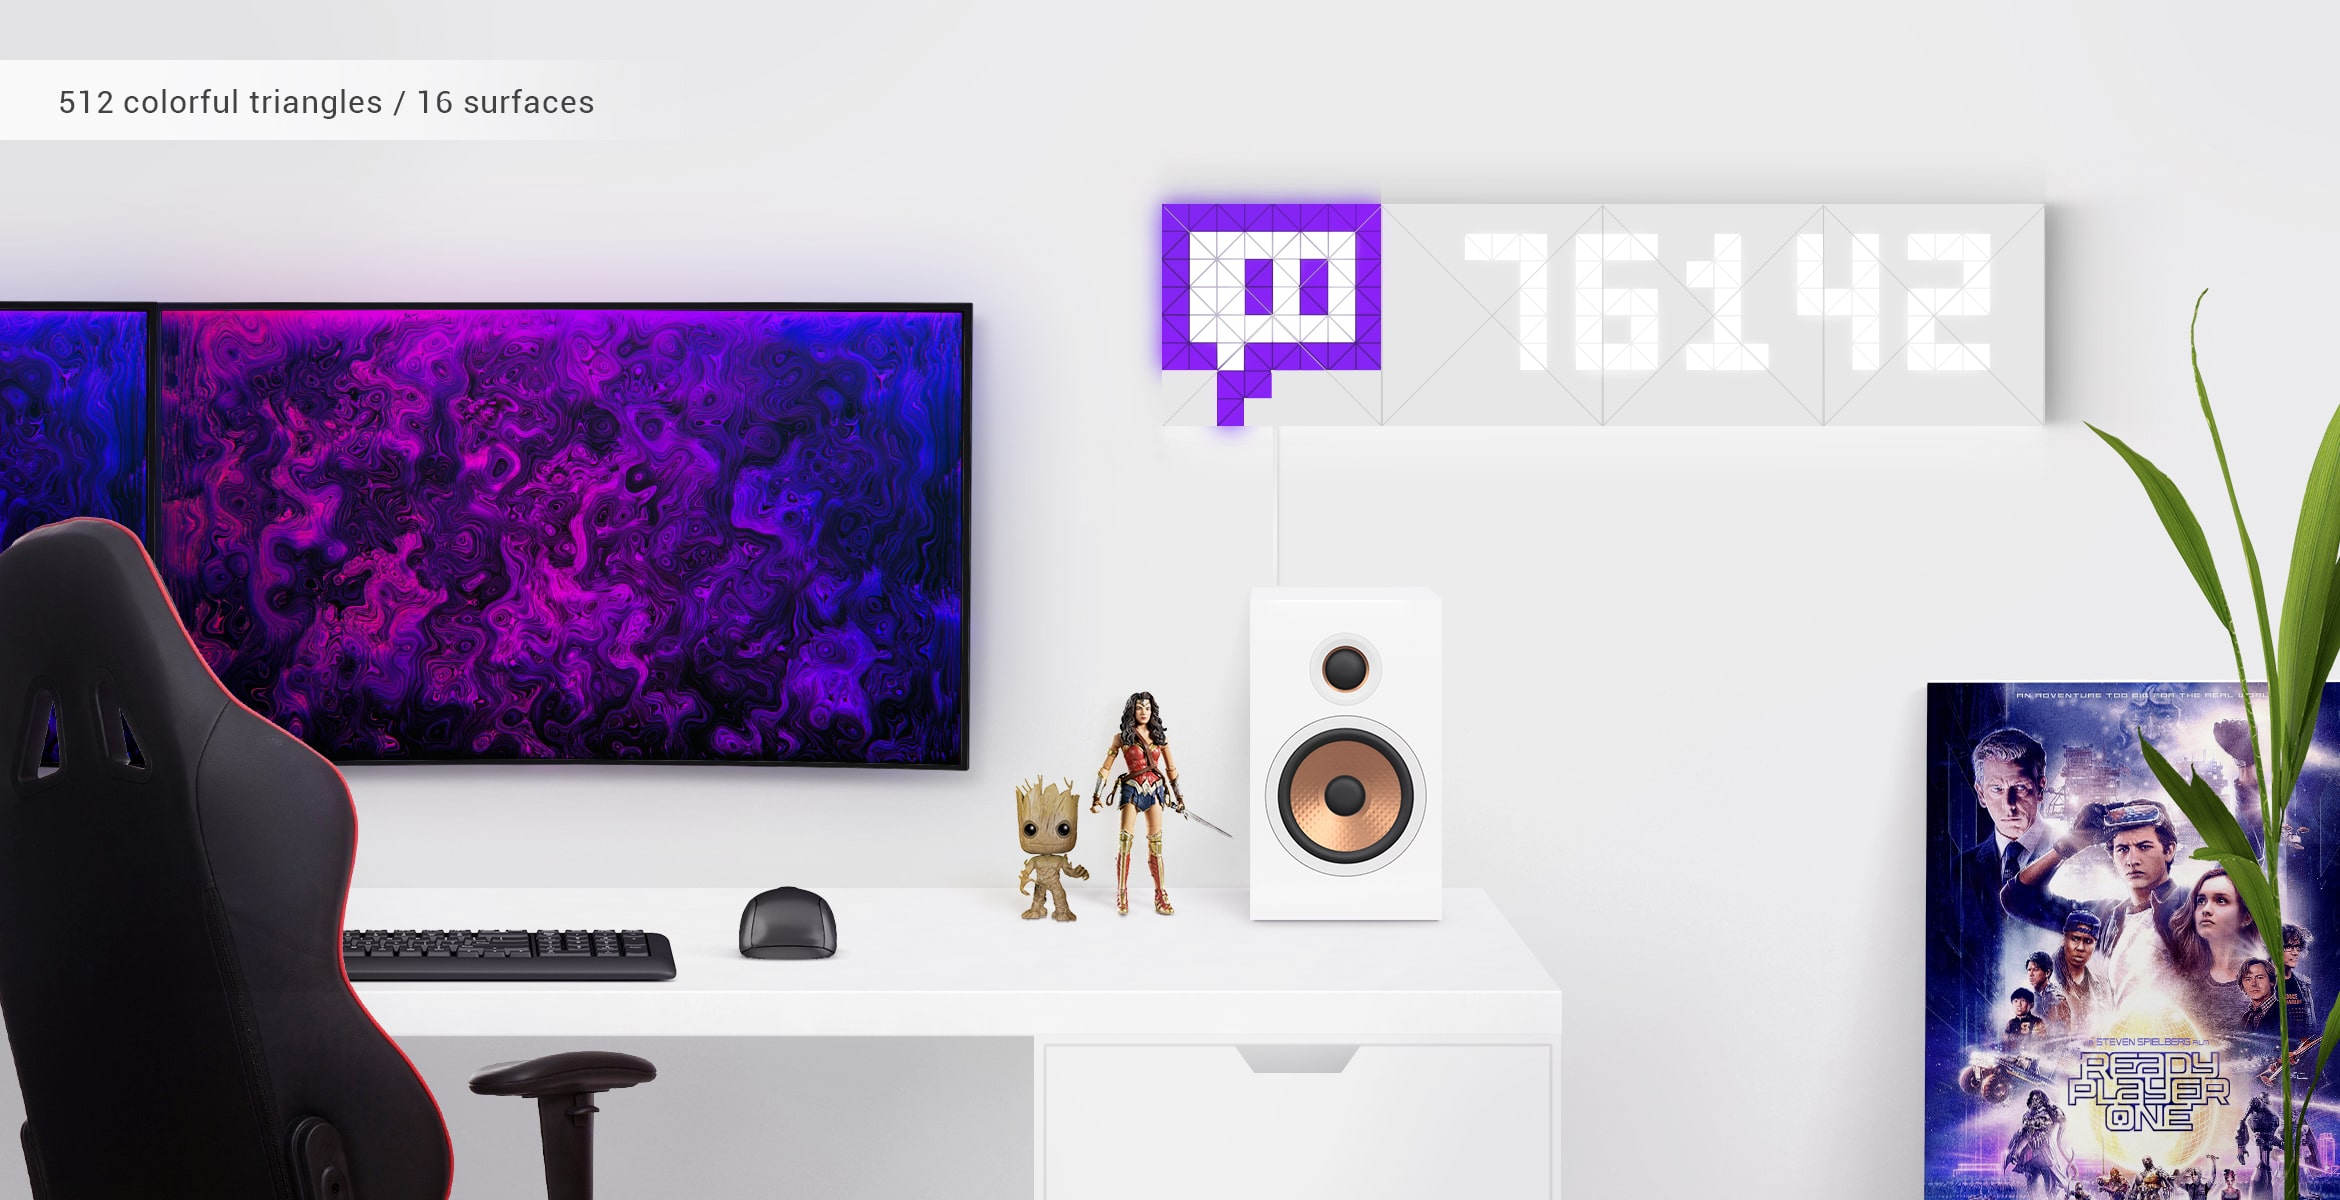 Infoscreen, assembled from 16 smart light surfaces, complements gamer's desk setup and displays  Twitch viewers amount